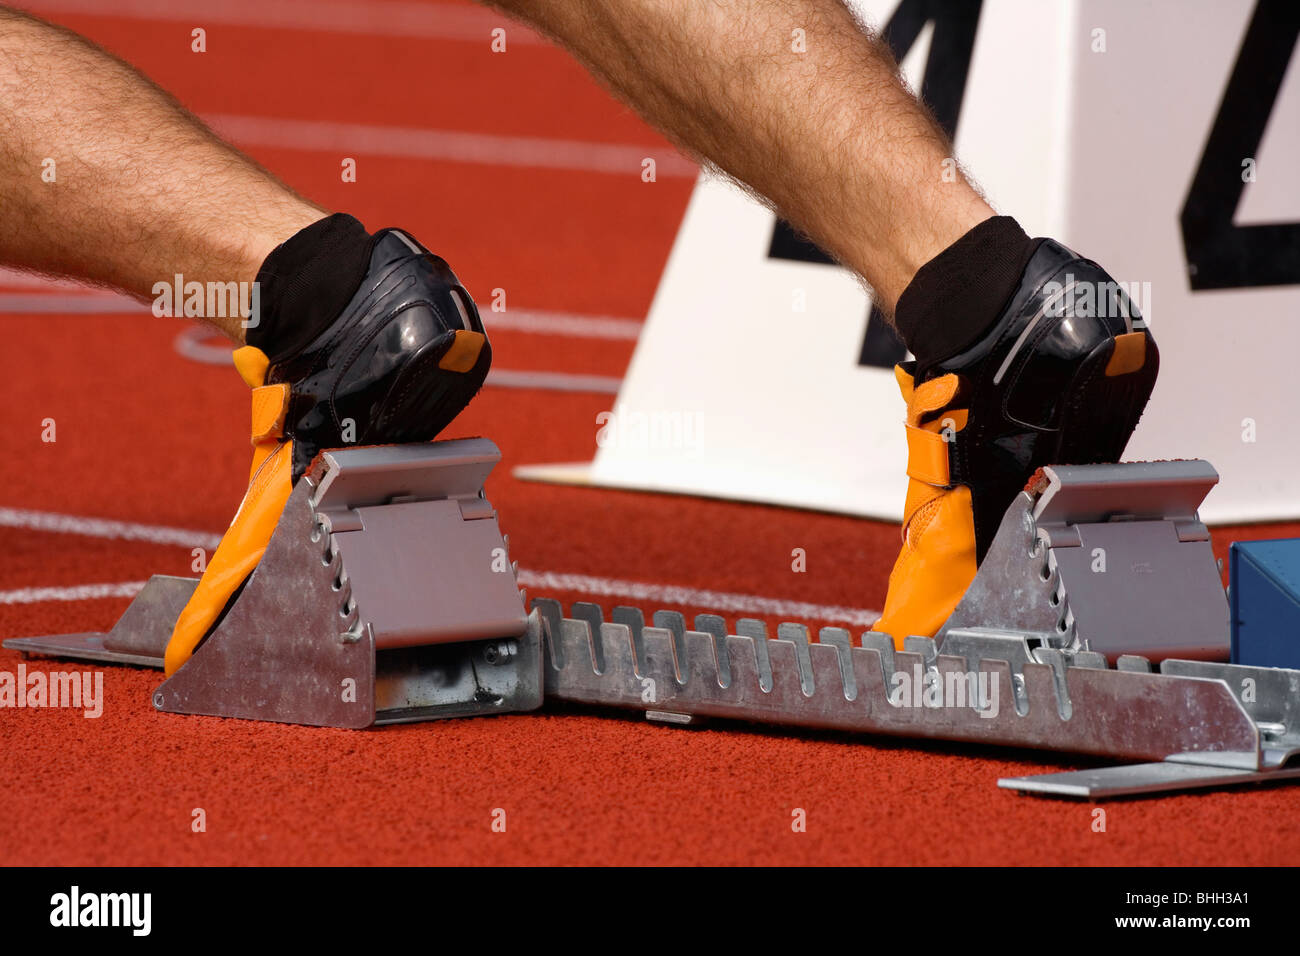 sport - runner at starting block in running competition - Stock Image